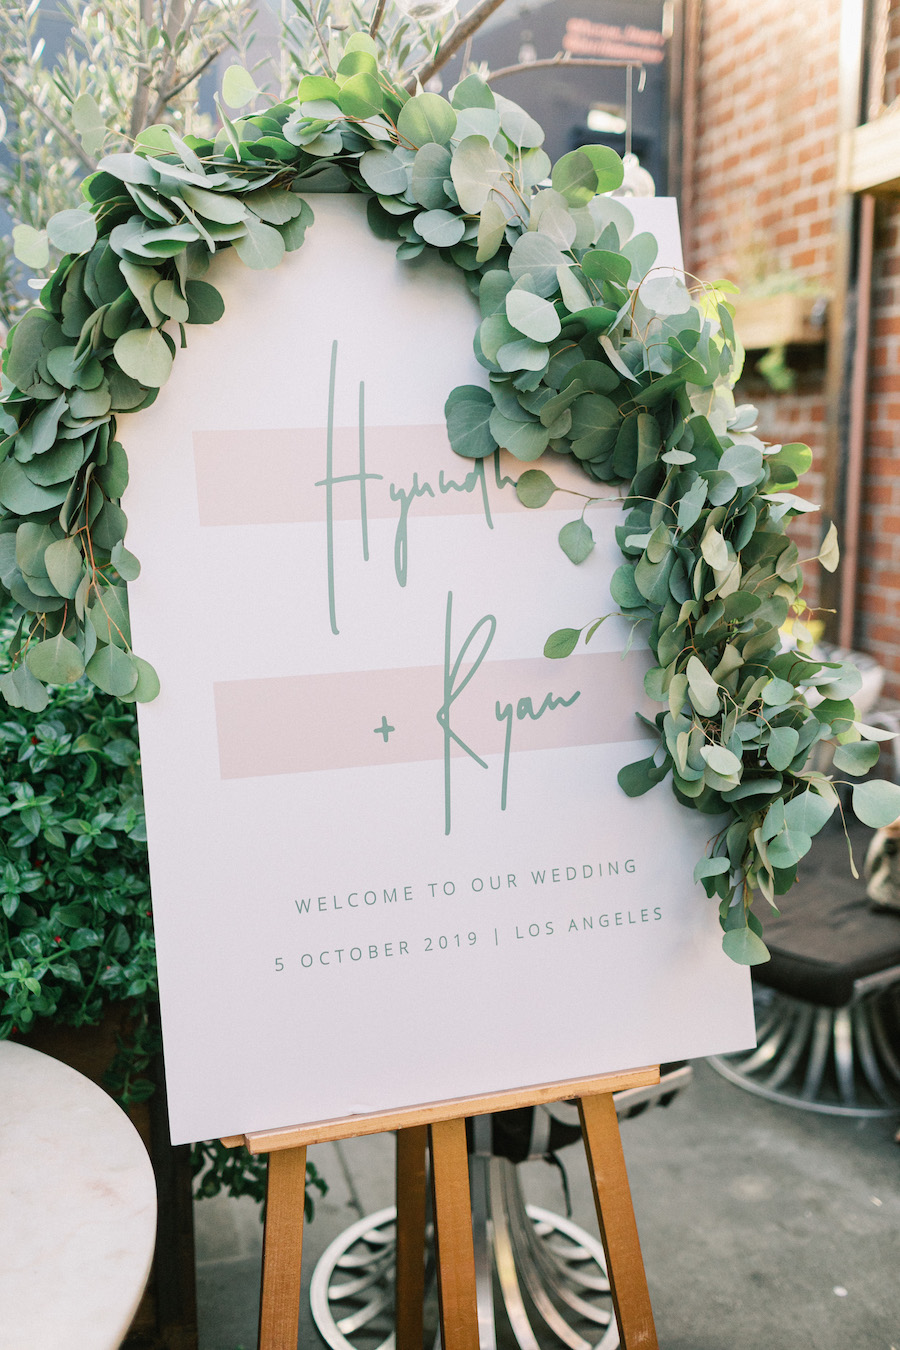 wedding ceremony sign with bride and grooms name